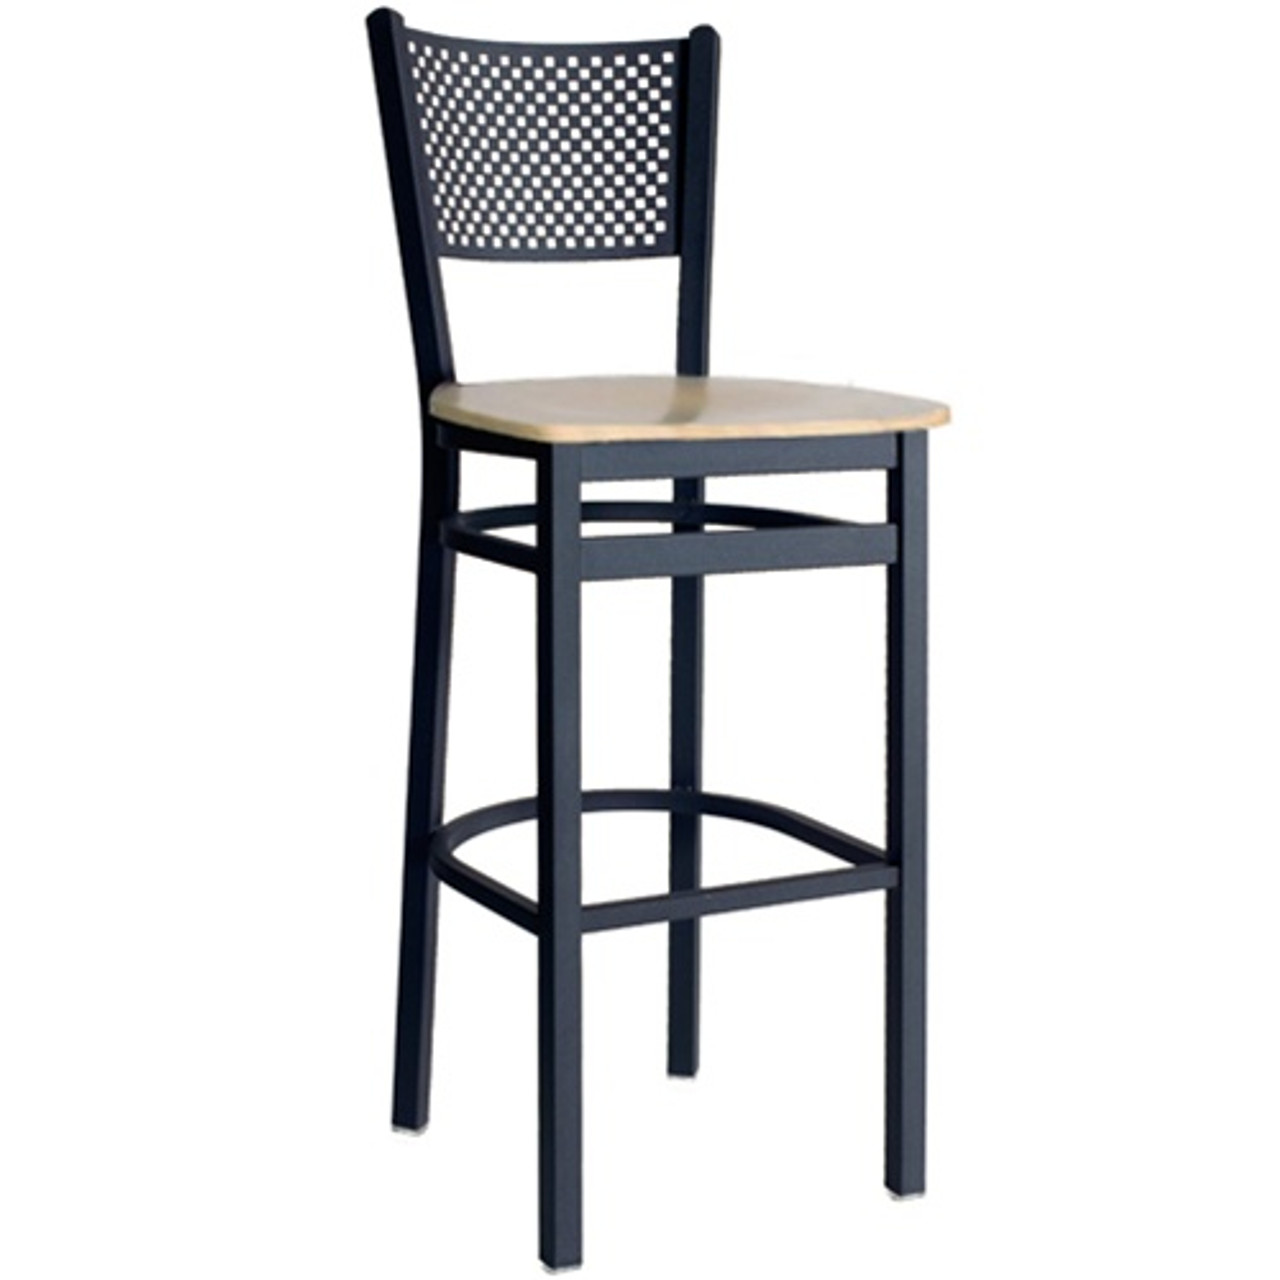 Marvelous Bfm Seating Polk Black Metal Perforated Back Restaurant Bar Stools 2161B Sbw Alphanode Cool Chair Designs And Ideas Alphanodeonline